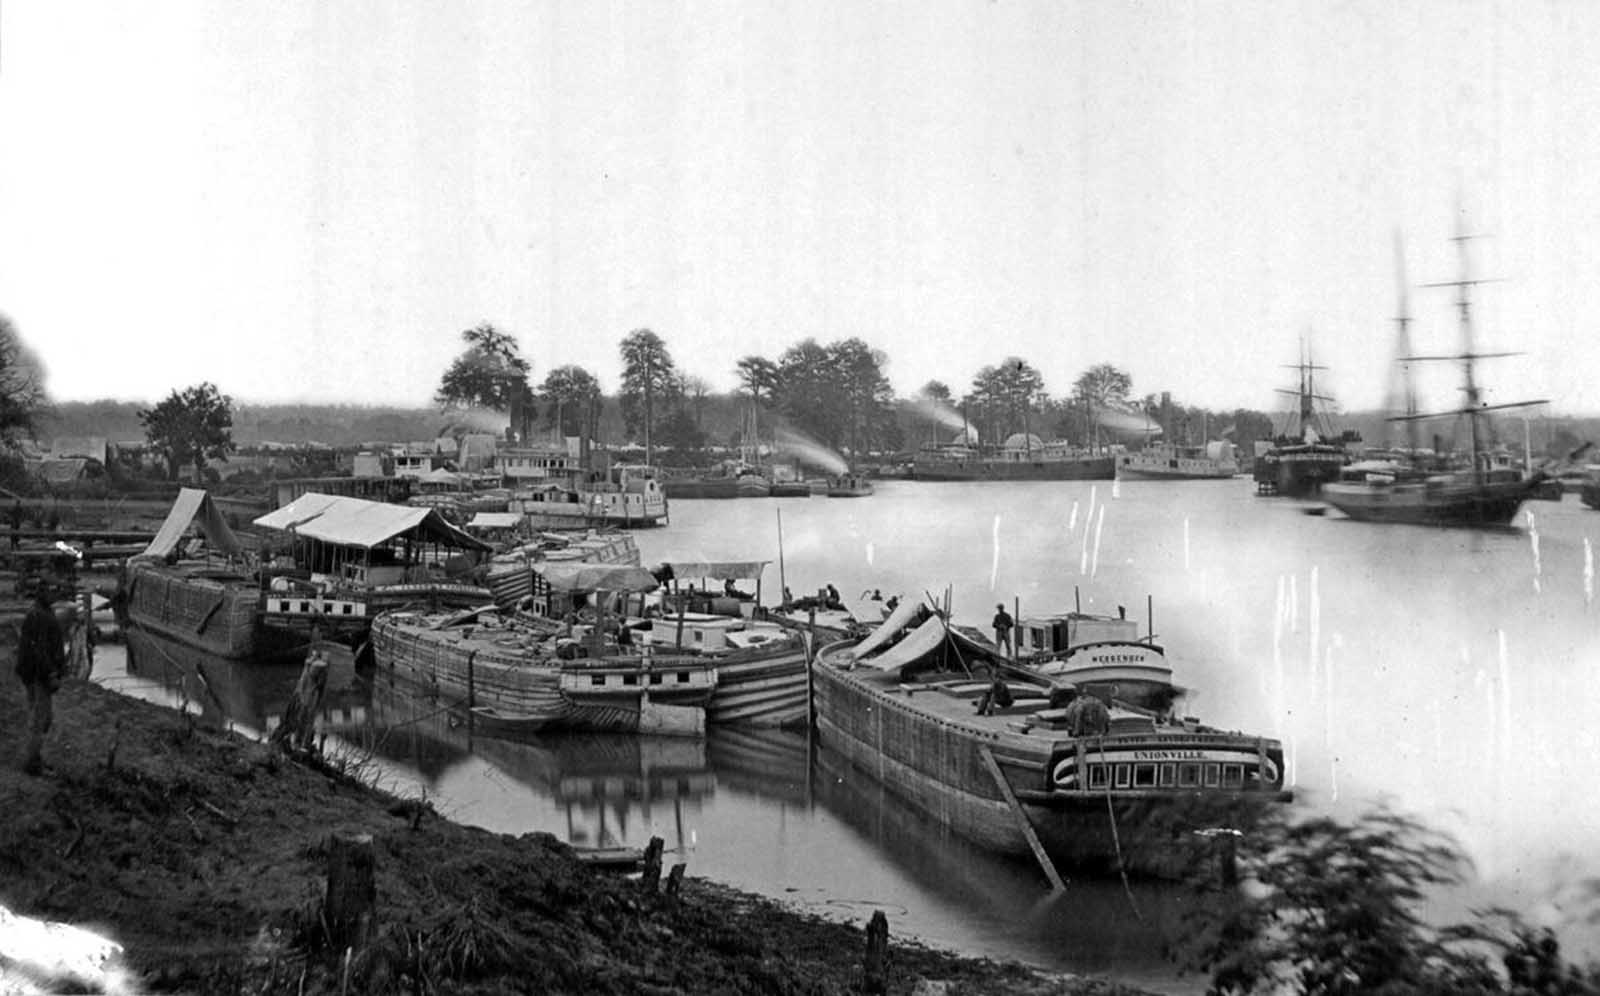 White House Landing, on the Pamunkey river, Virginia. The site was a major Union Army Supply Base in 1862 ,during the Peninsula Campaign.